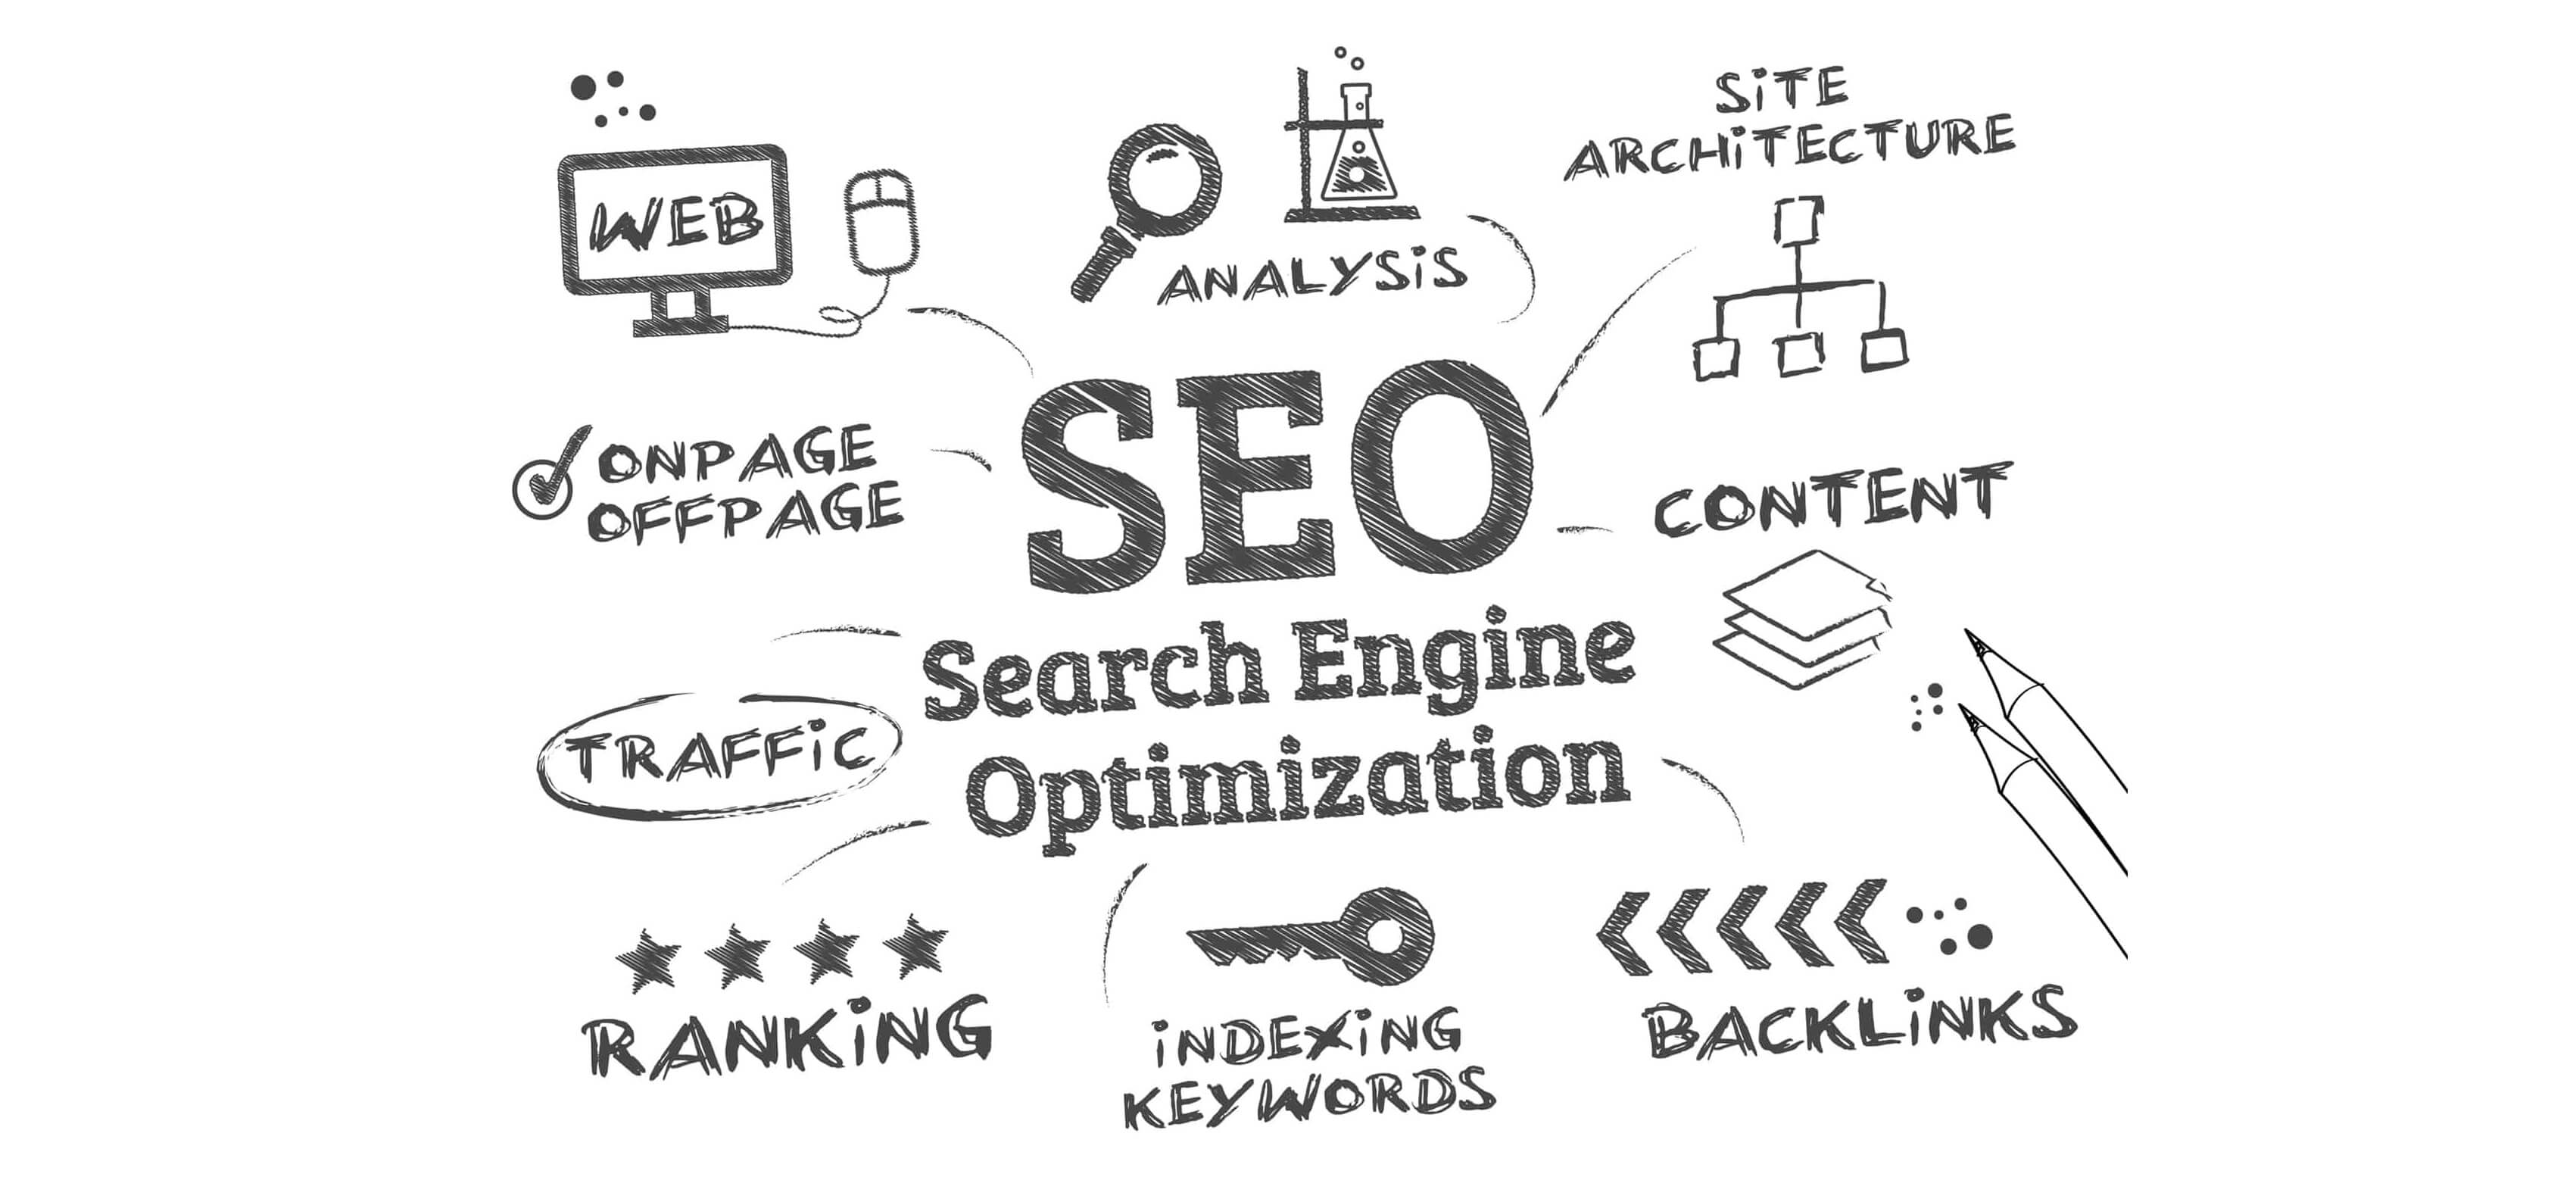 Best SEO Consultant - Top SEO Service in Karachi | Aekpani Networks